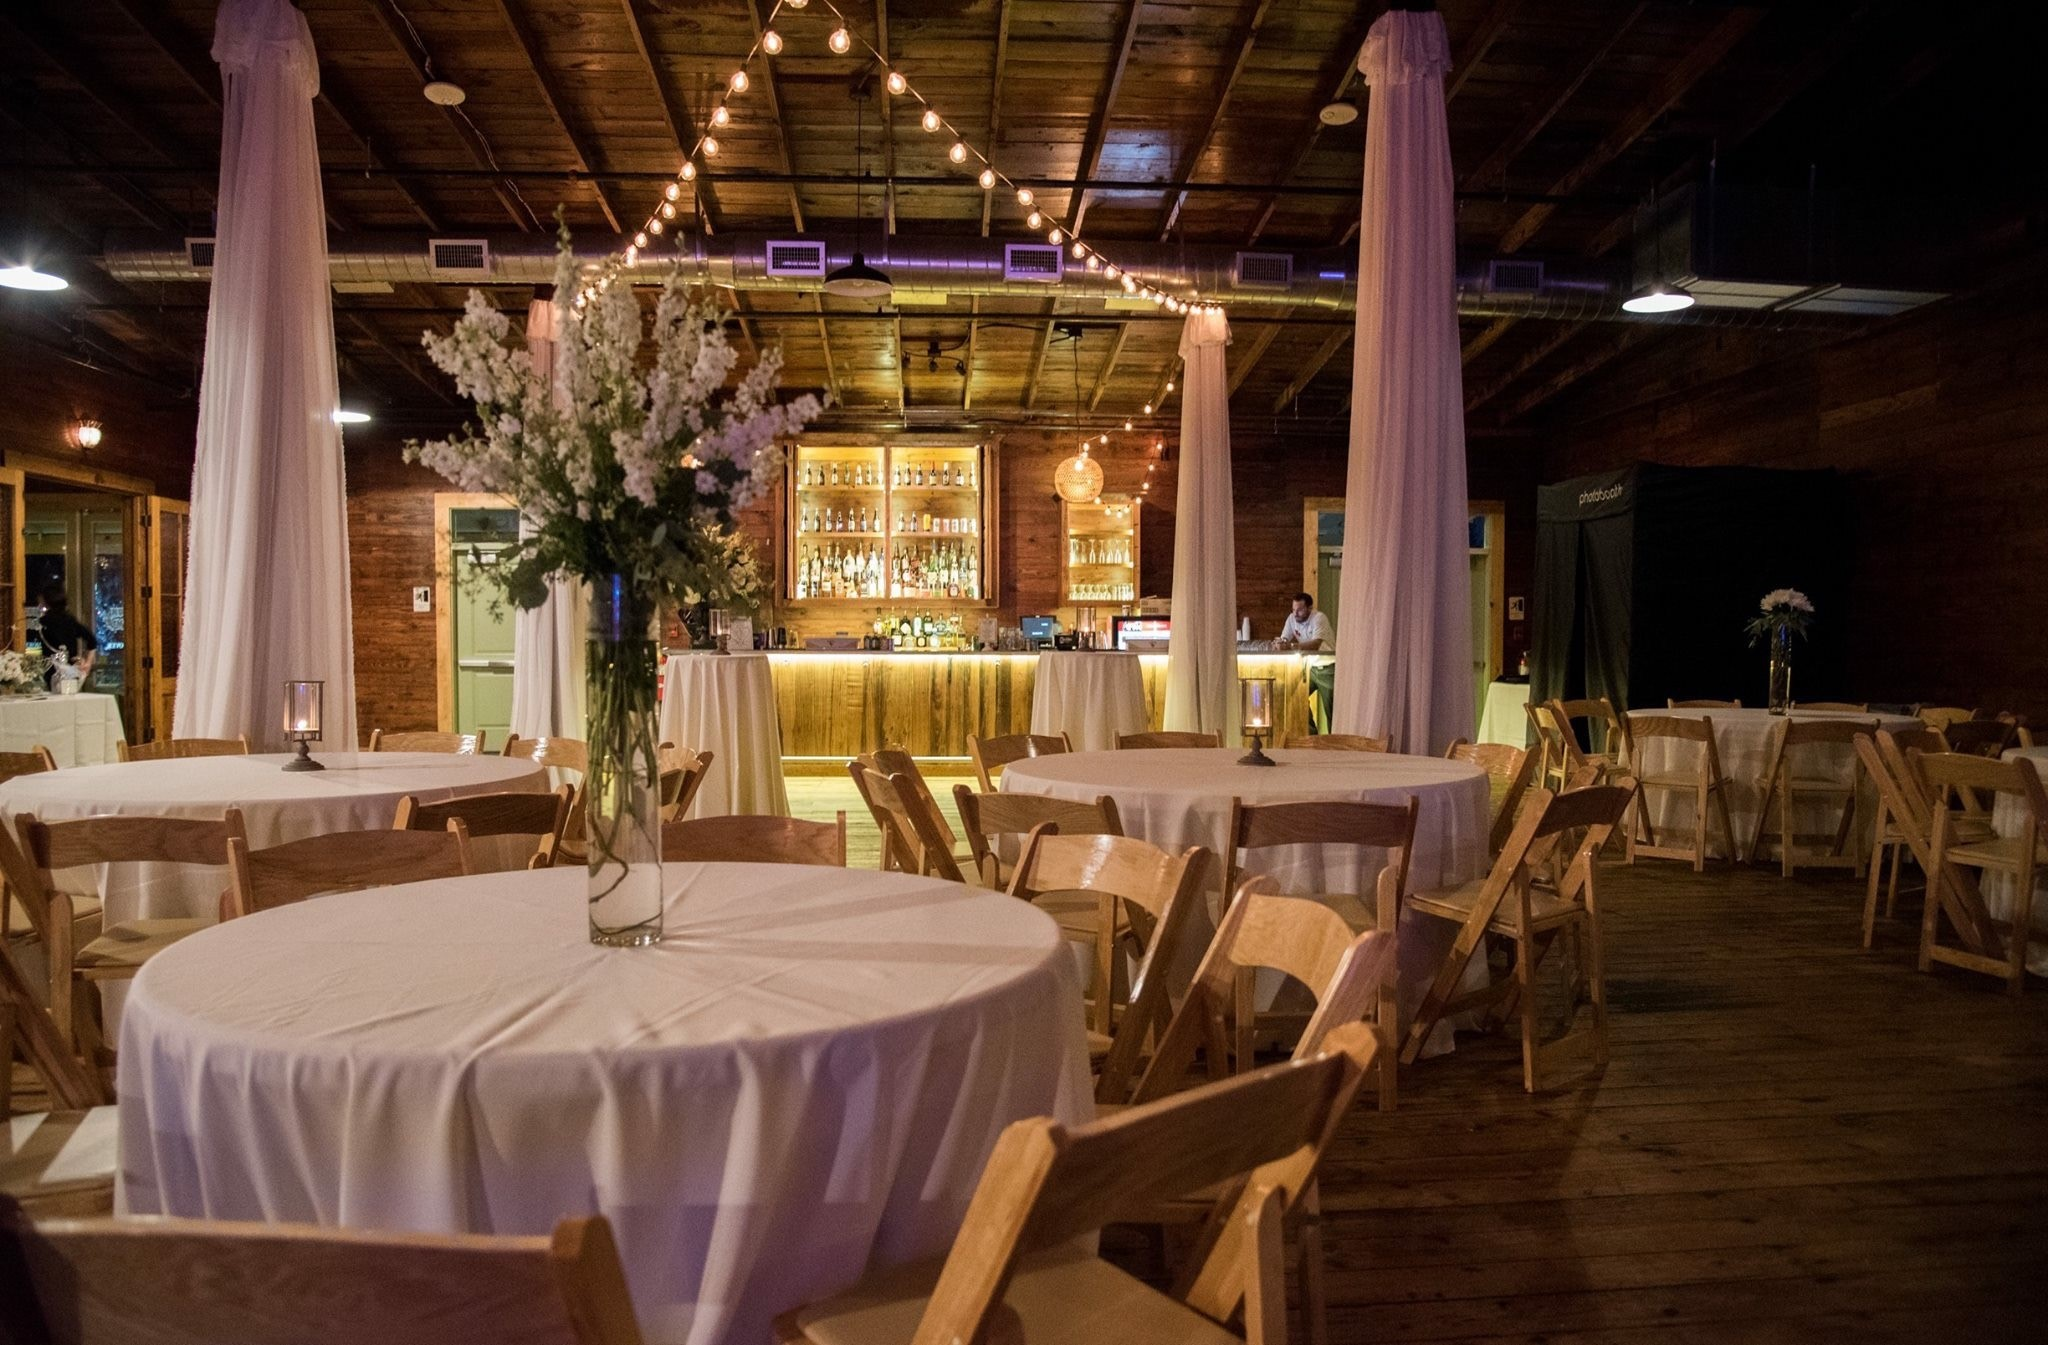 Crazy wedding venue decorated at warehouse 535 located near lafayette louisiana